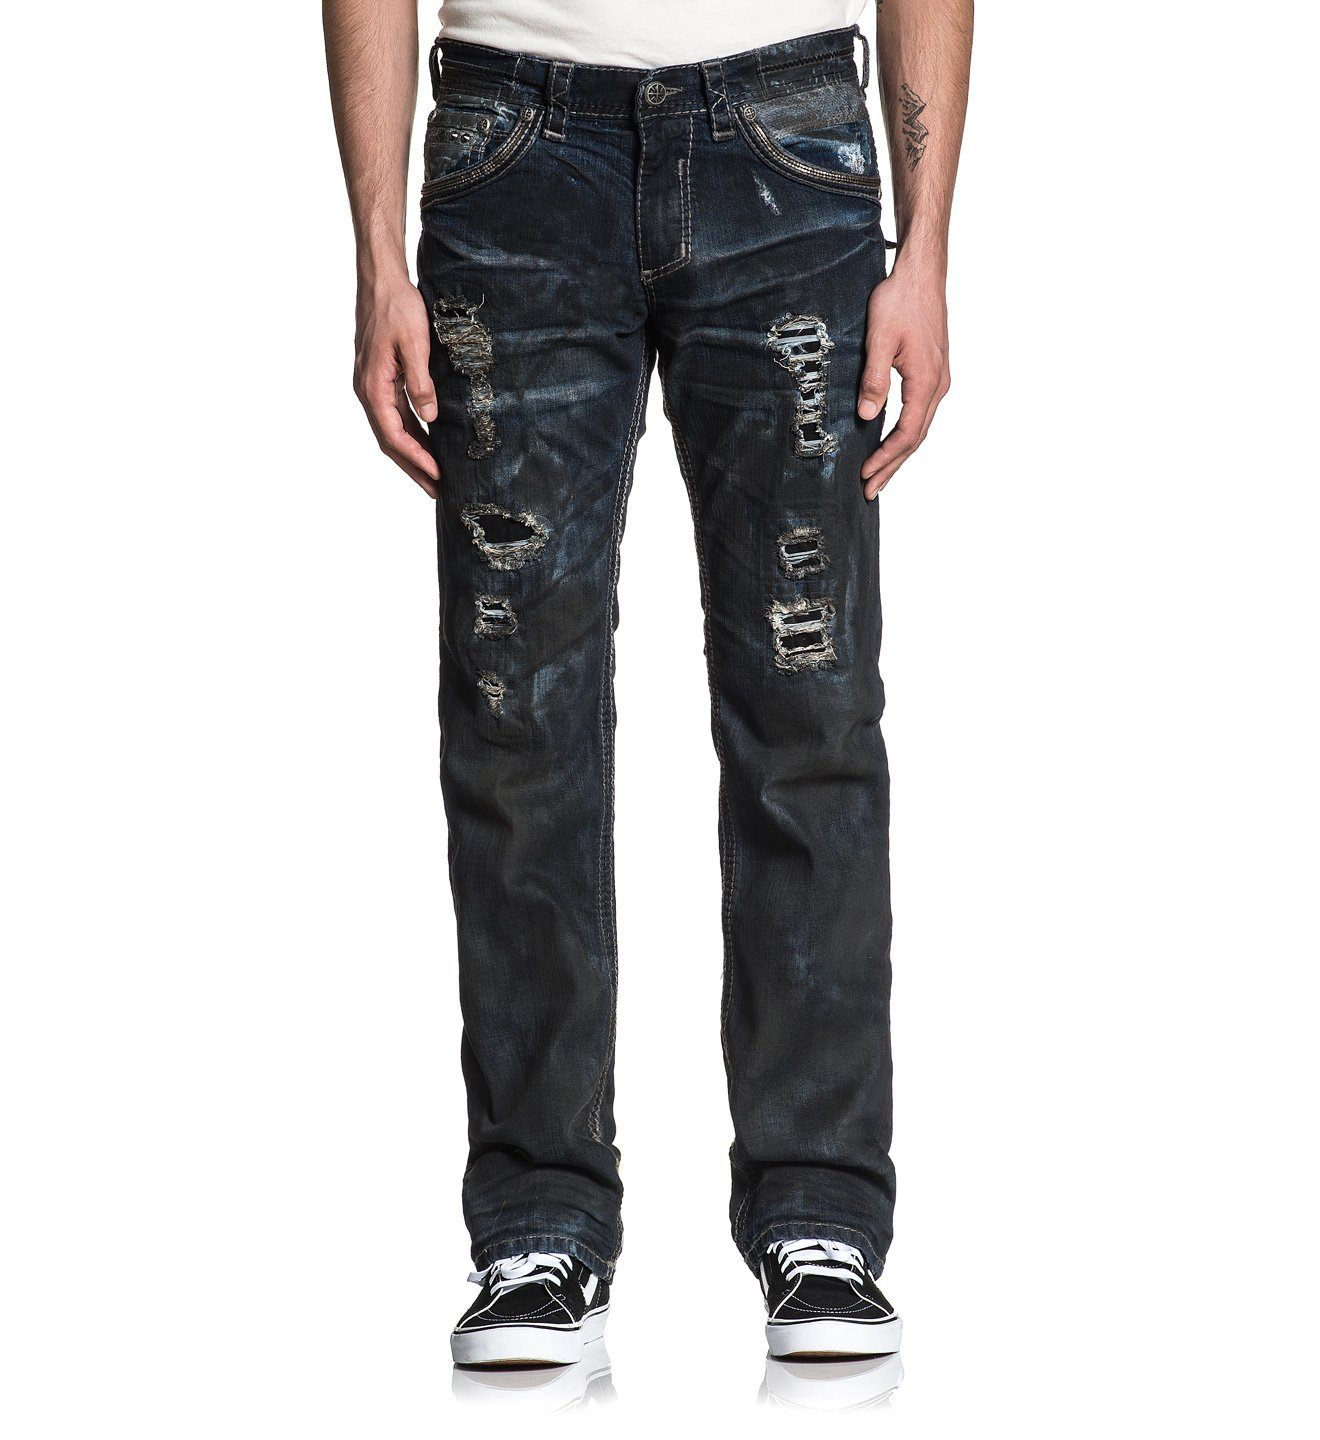 Blake Fleur Enzo - Mens Denim Bottoms - Affliction Clothing